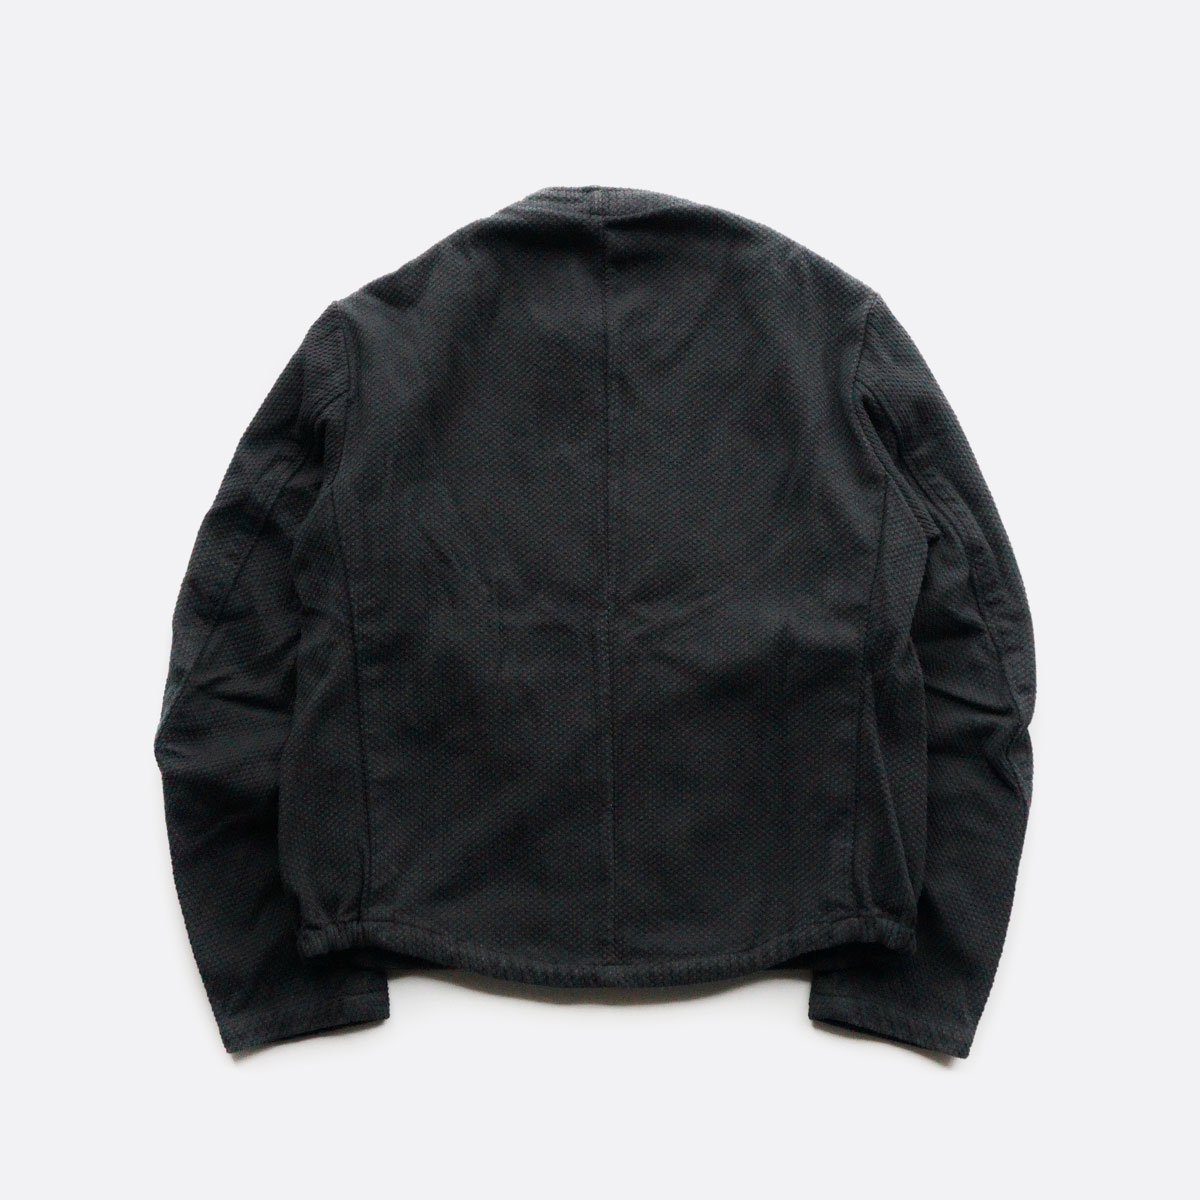 COLINA Sashiko W-Riders Jacket  (Antique black)2